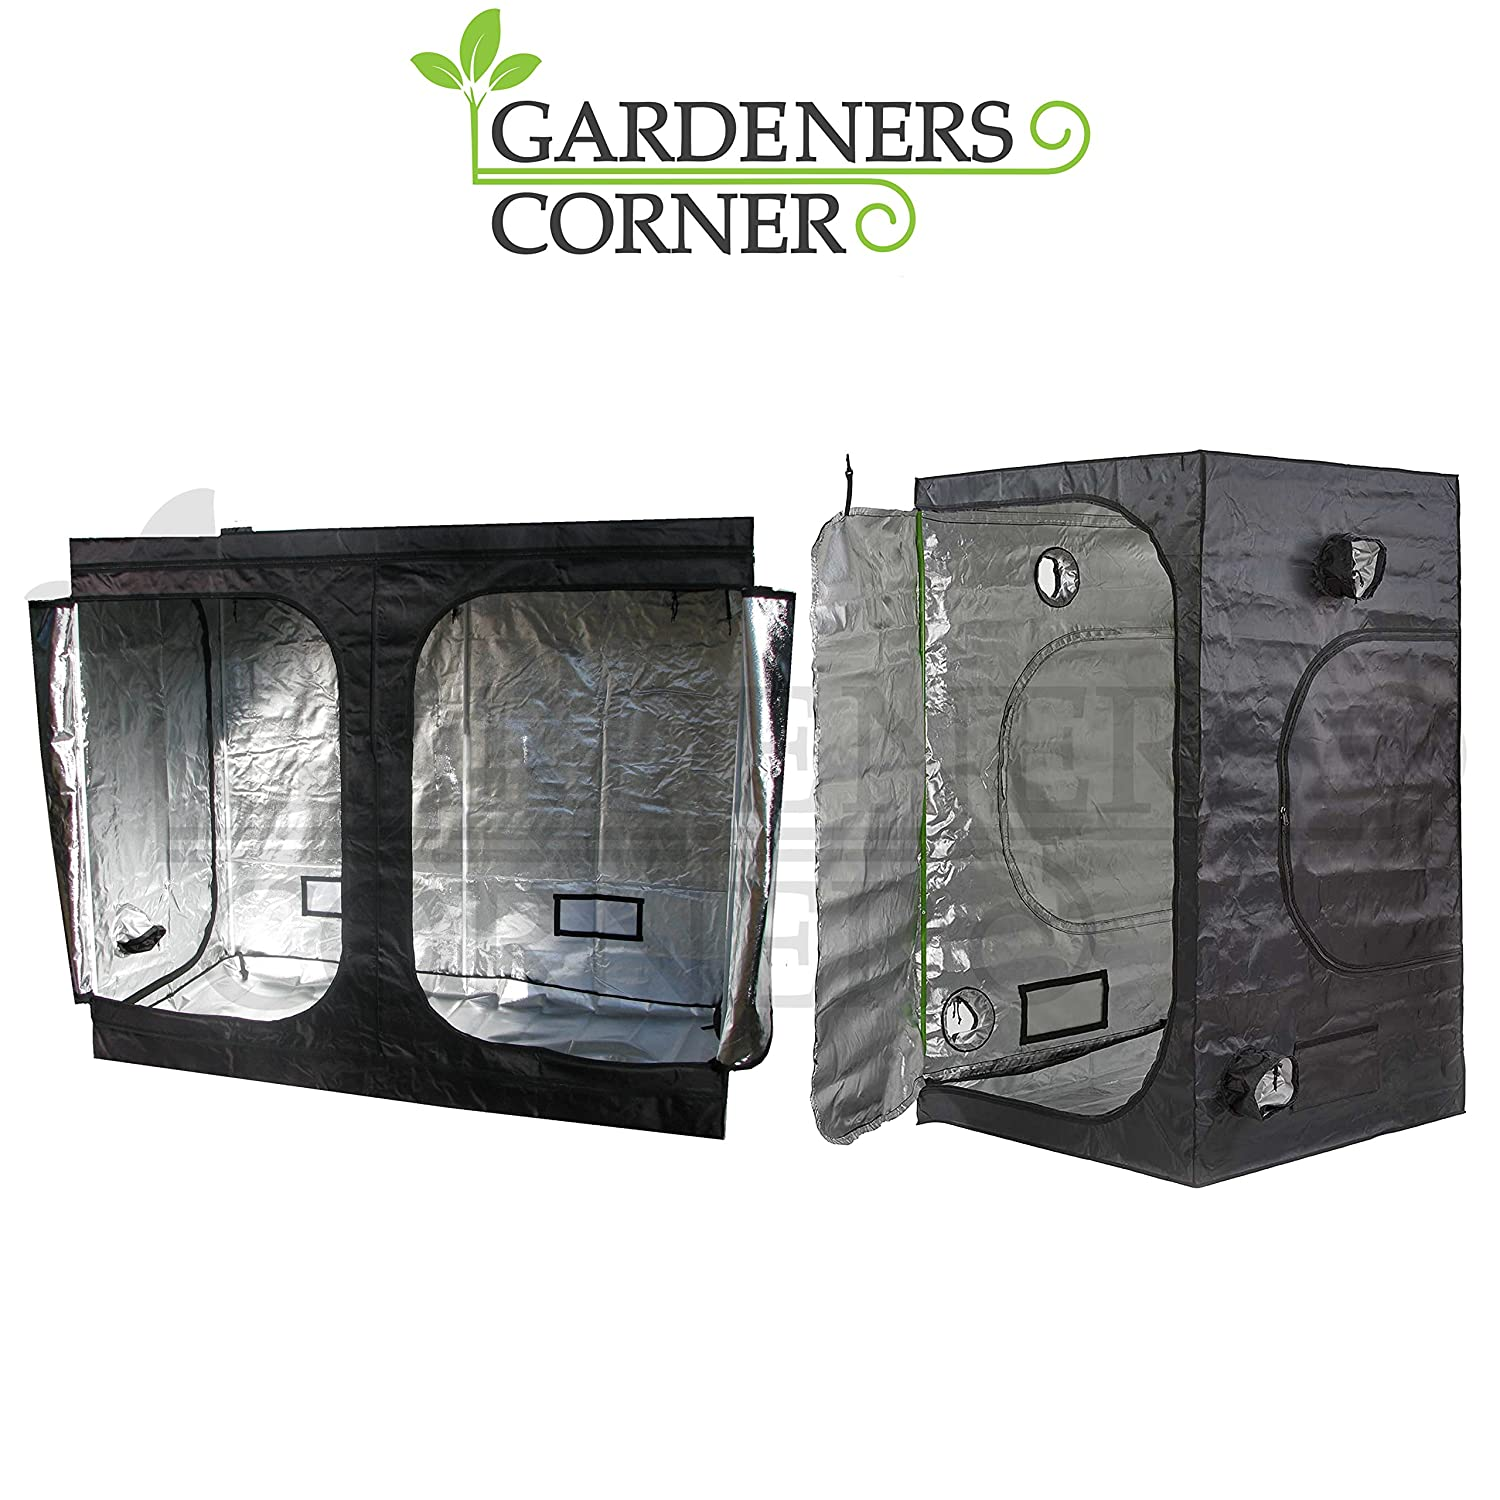 gardeners corner Hydroponics Indoor Growing Tent Grow Bud Box Room (1.5m x 1.5m x 2m) ACI